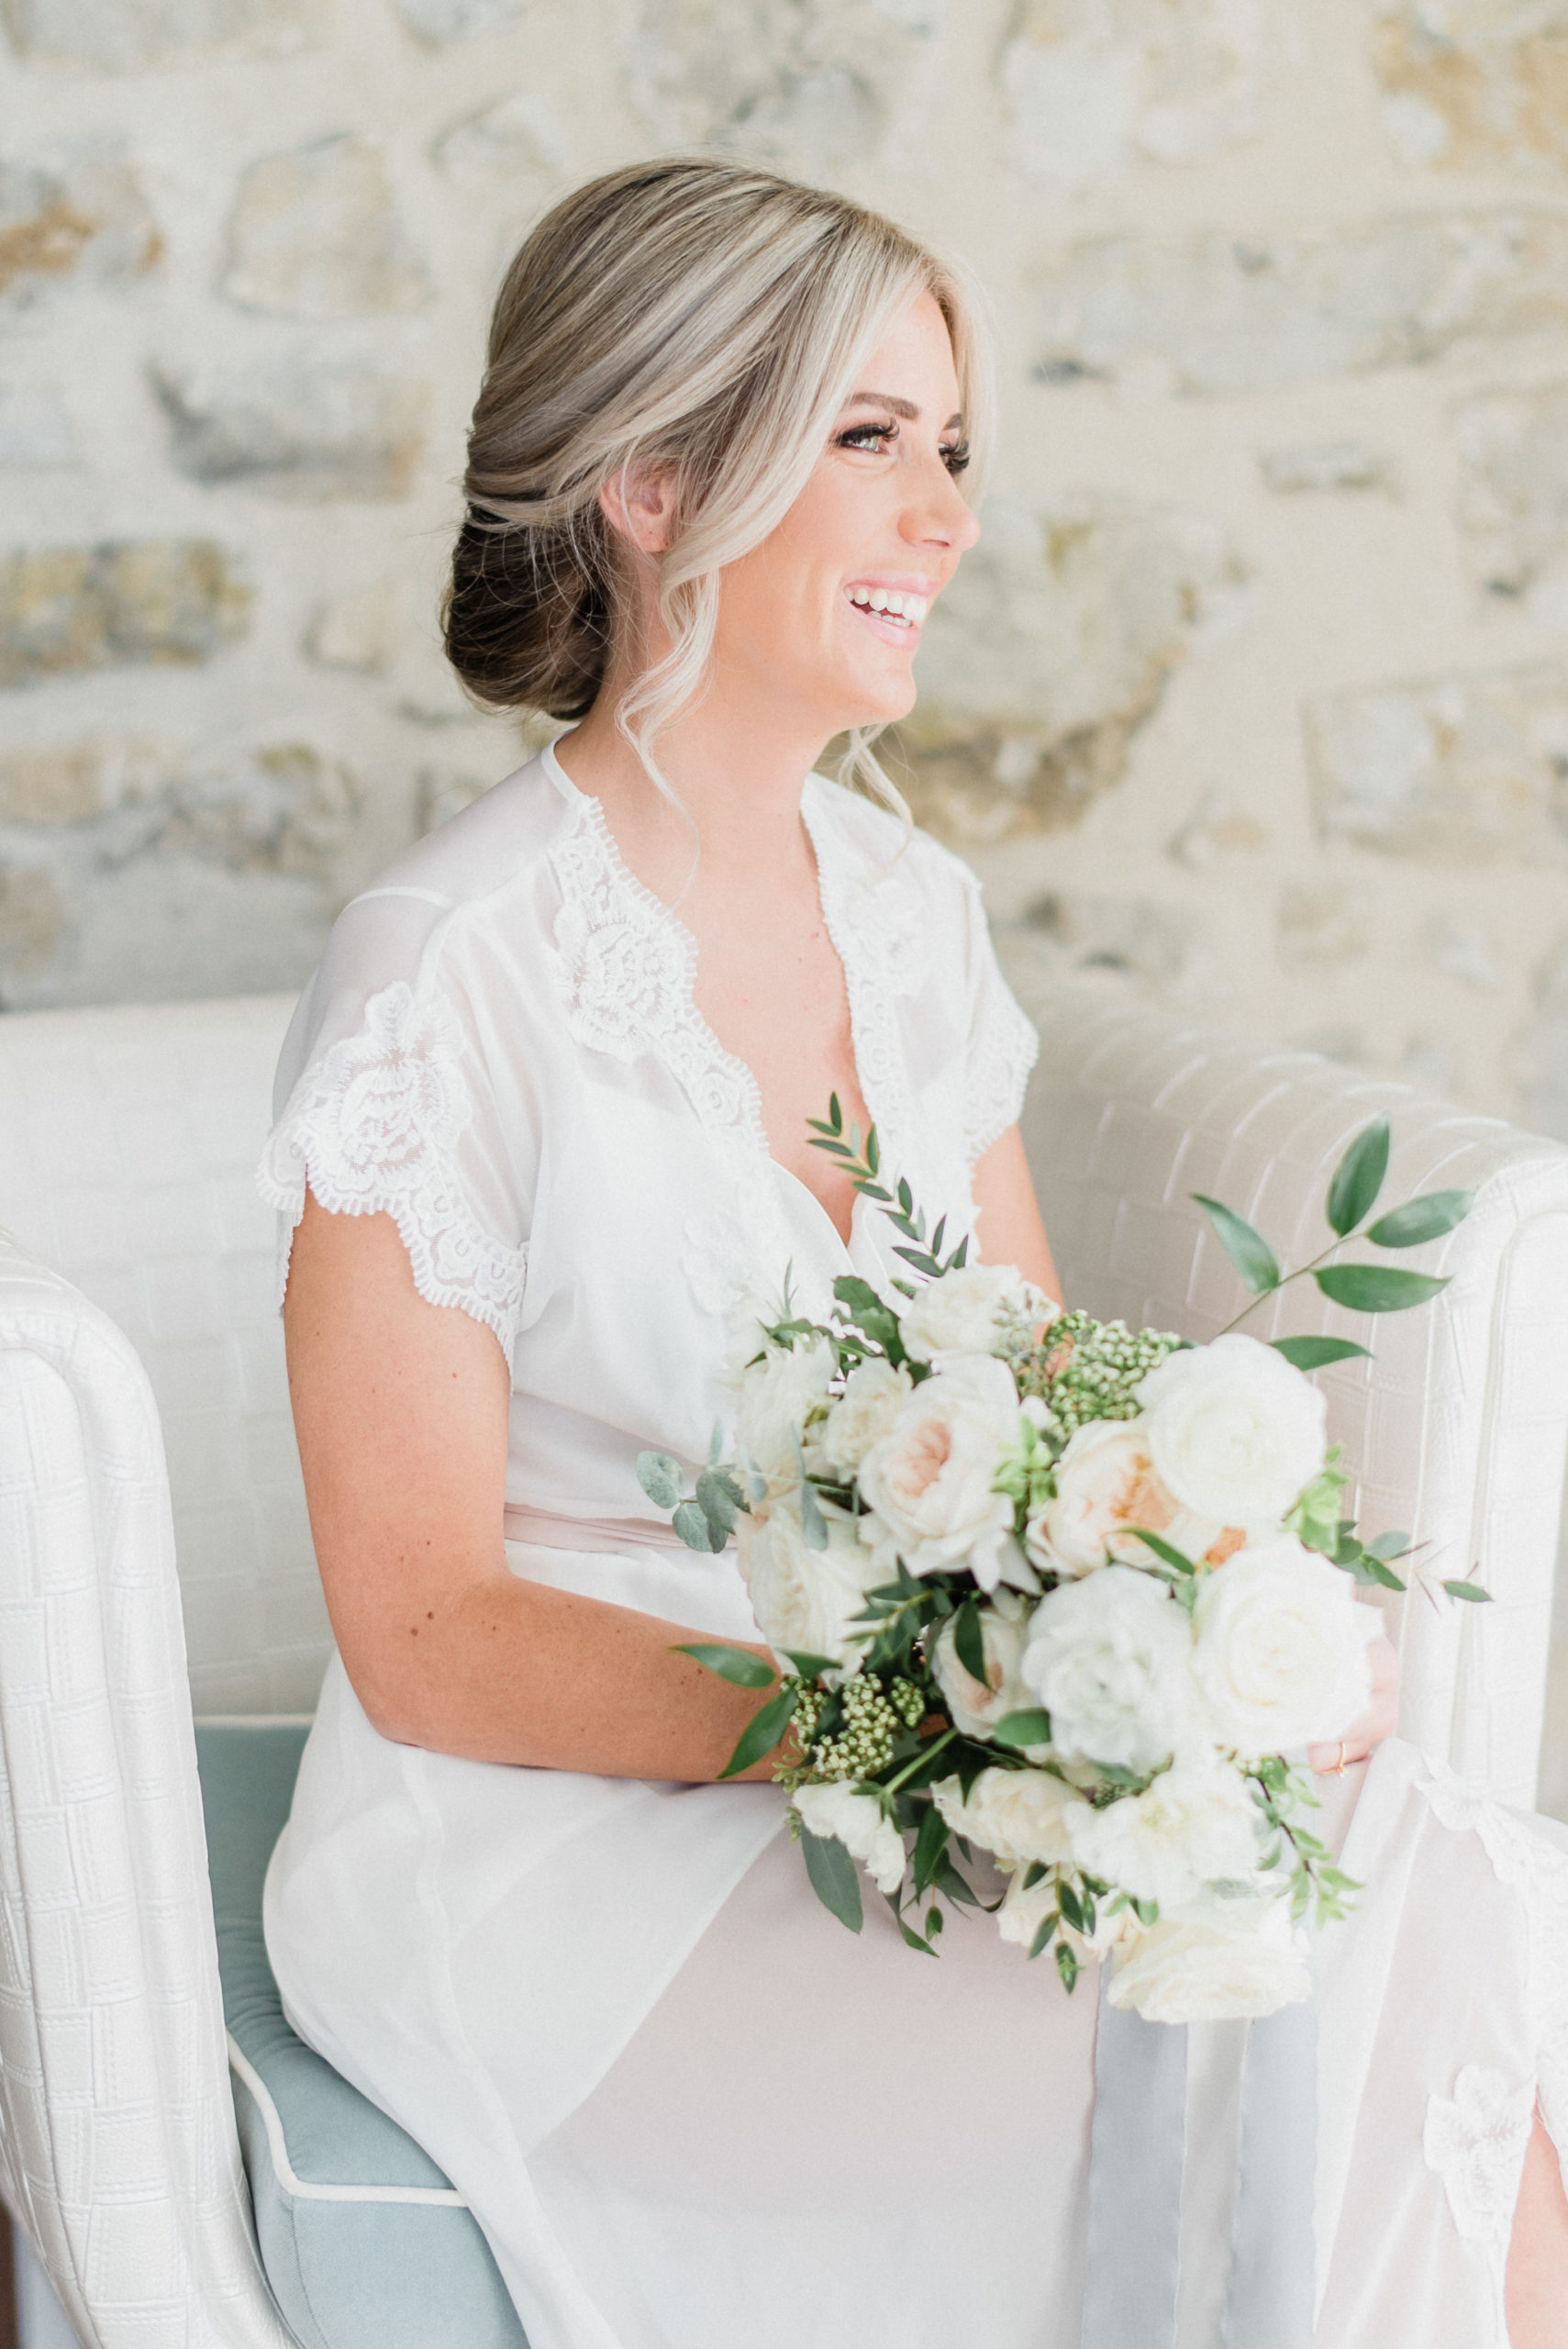 Bright and airy bridal getting ready photos by Jenn Kavanagh Photography